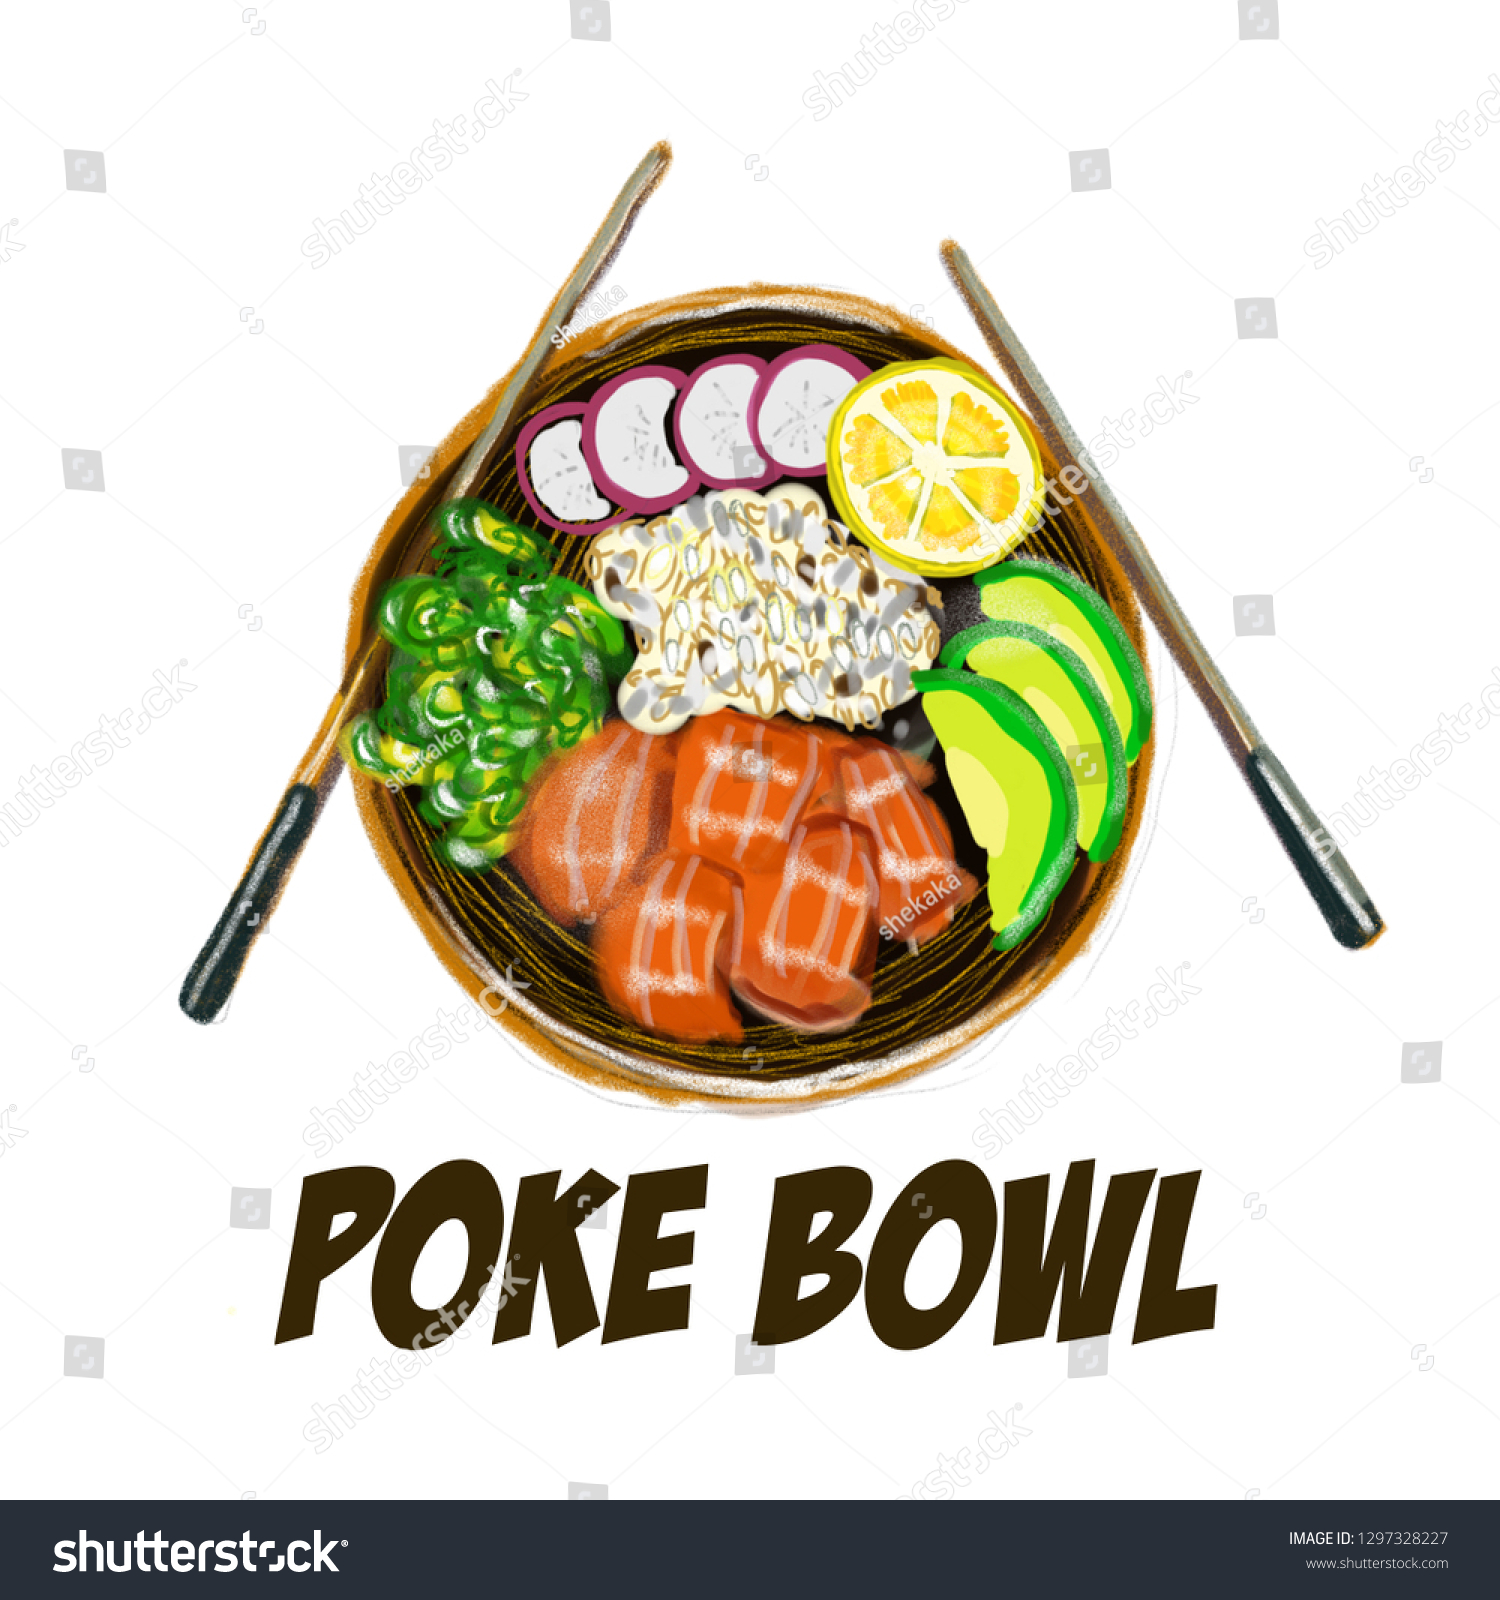 Element Cuisine Royalty Free Stock Illustration Of Poke Bowl Hawaiian Cuisine Food